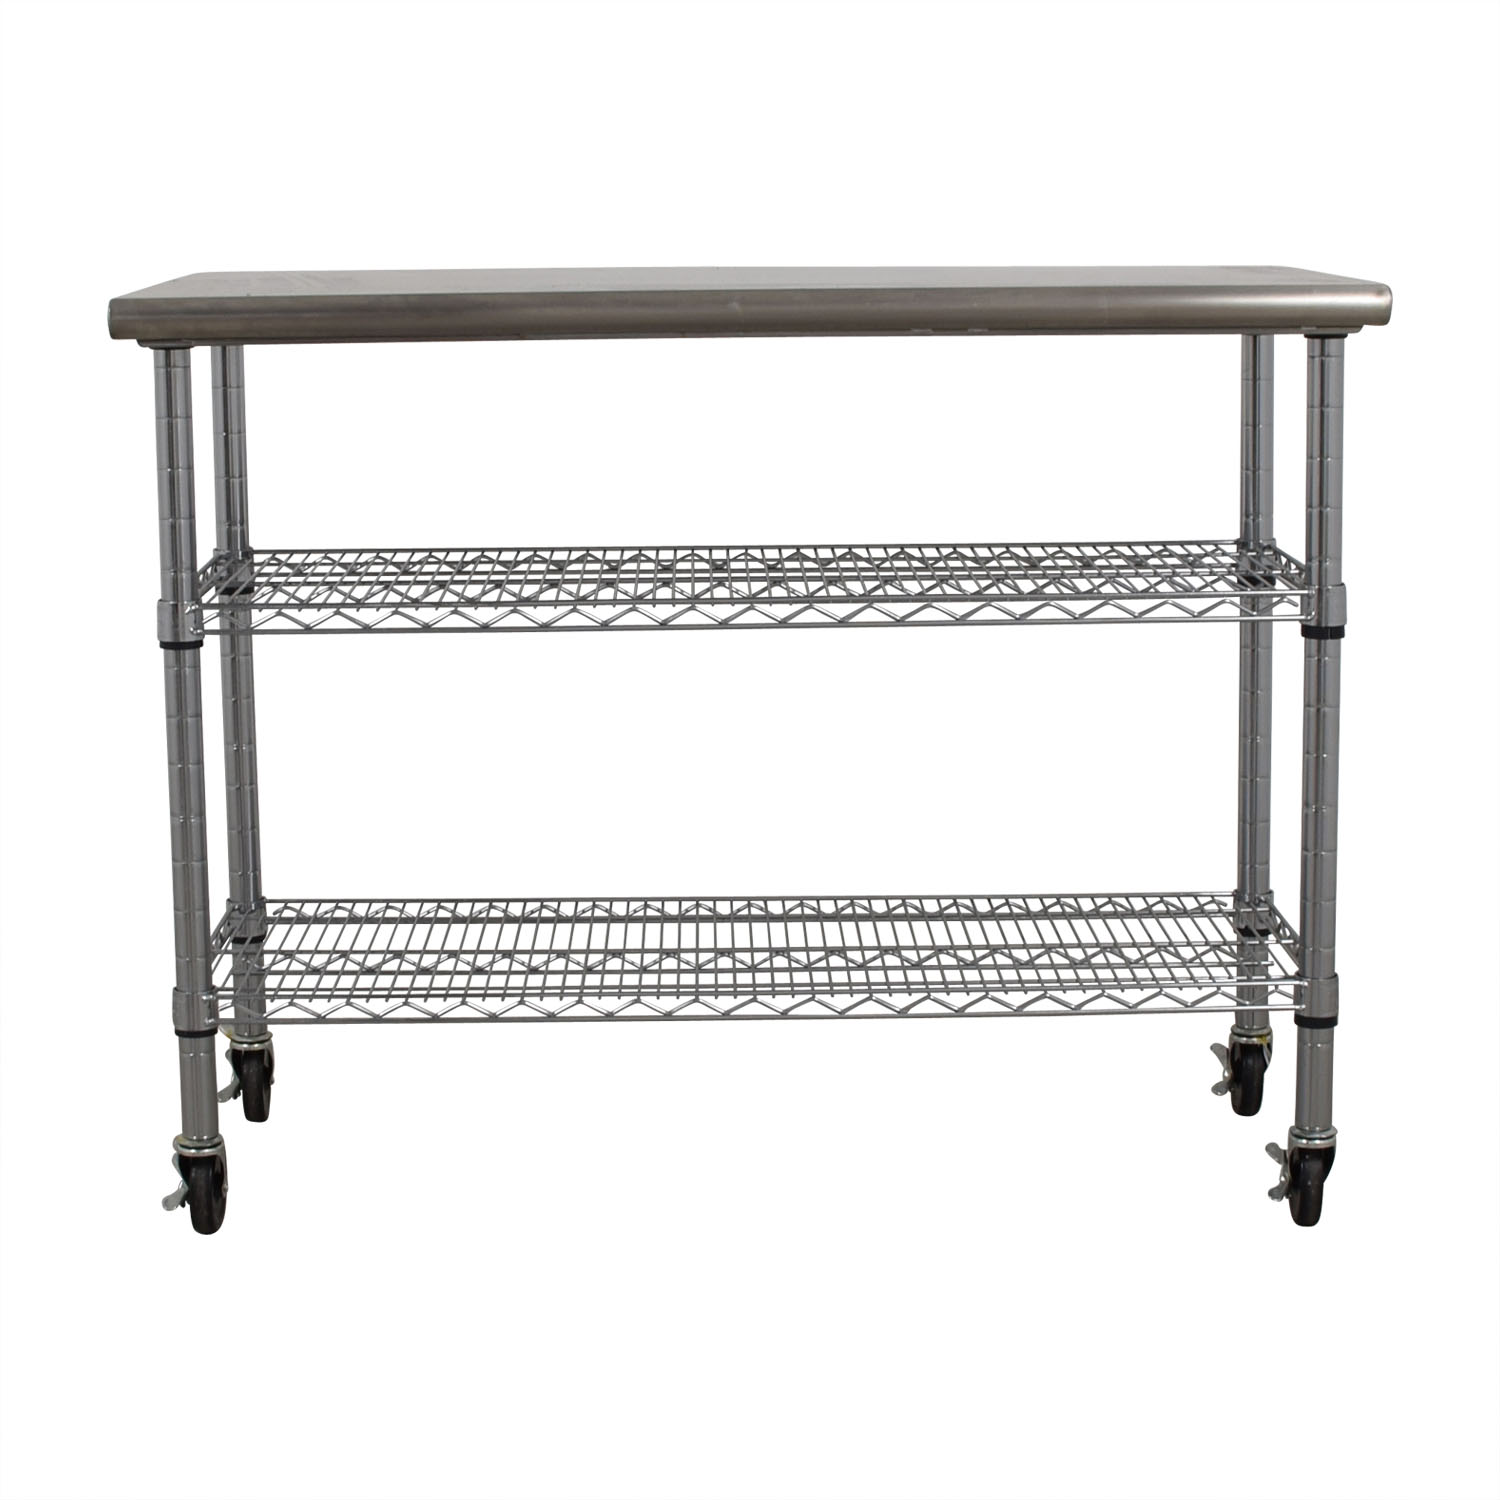 Home Depot Stainless Steel Utility Cart On Wheels Tables